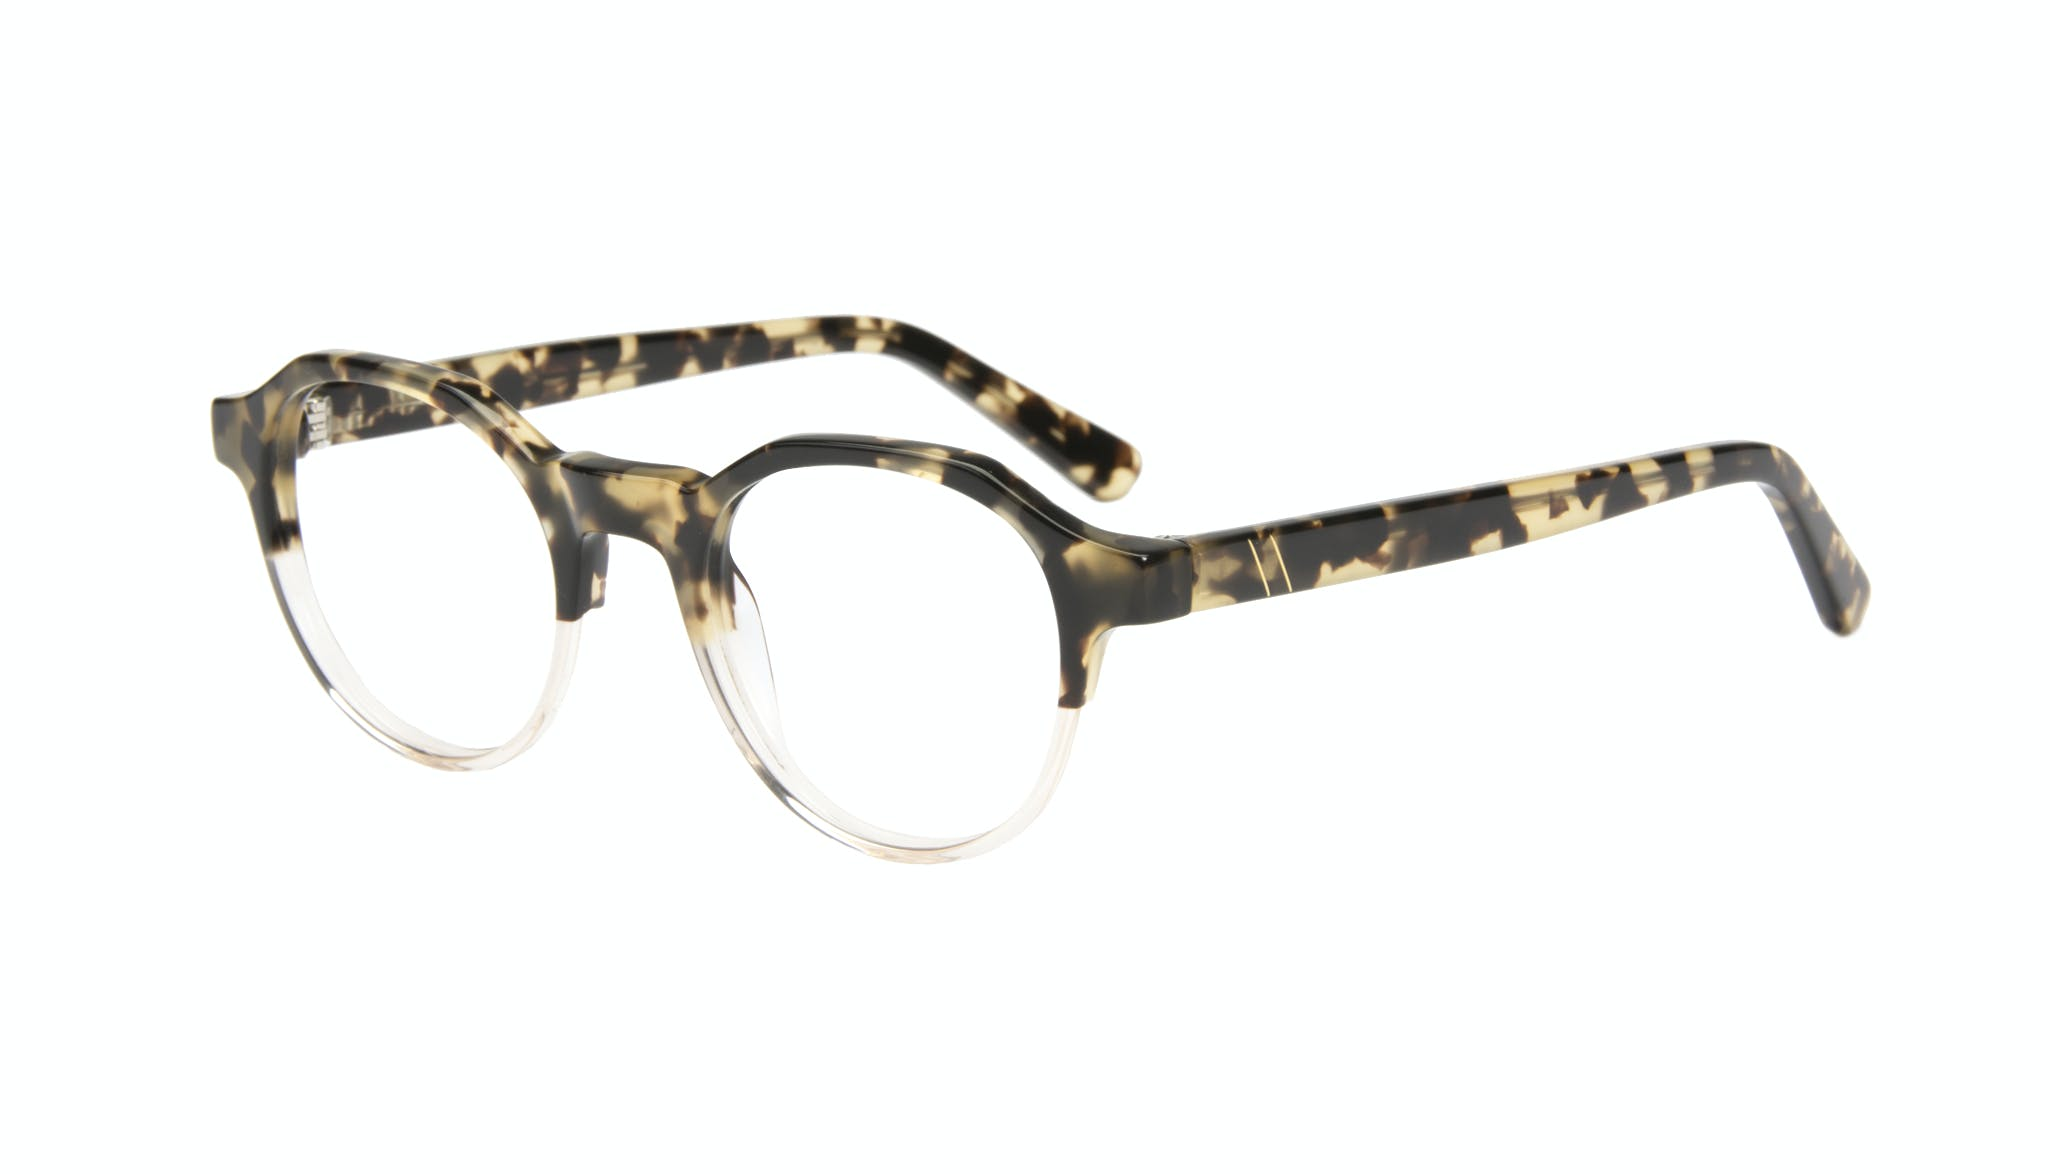 Affordable Fashion Glasses Round Eyeglasses Men Form Golden Tort Tilt